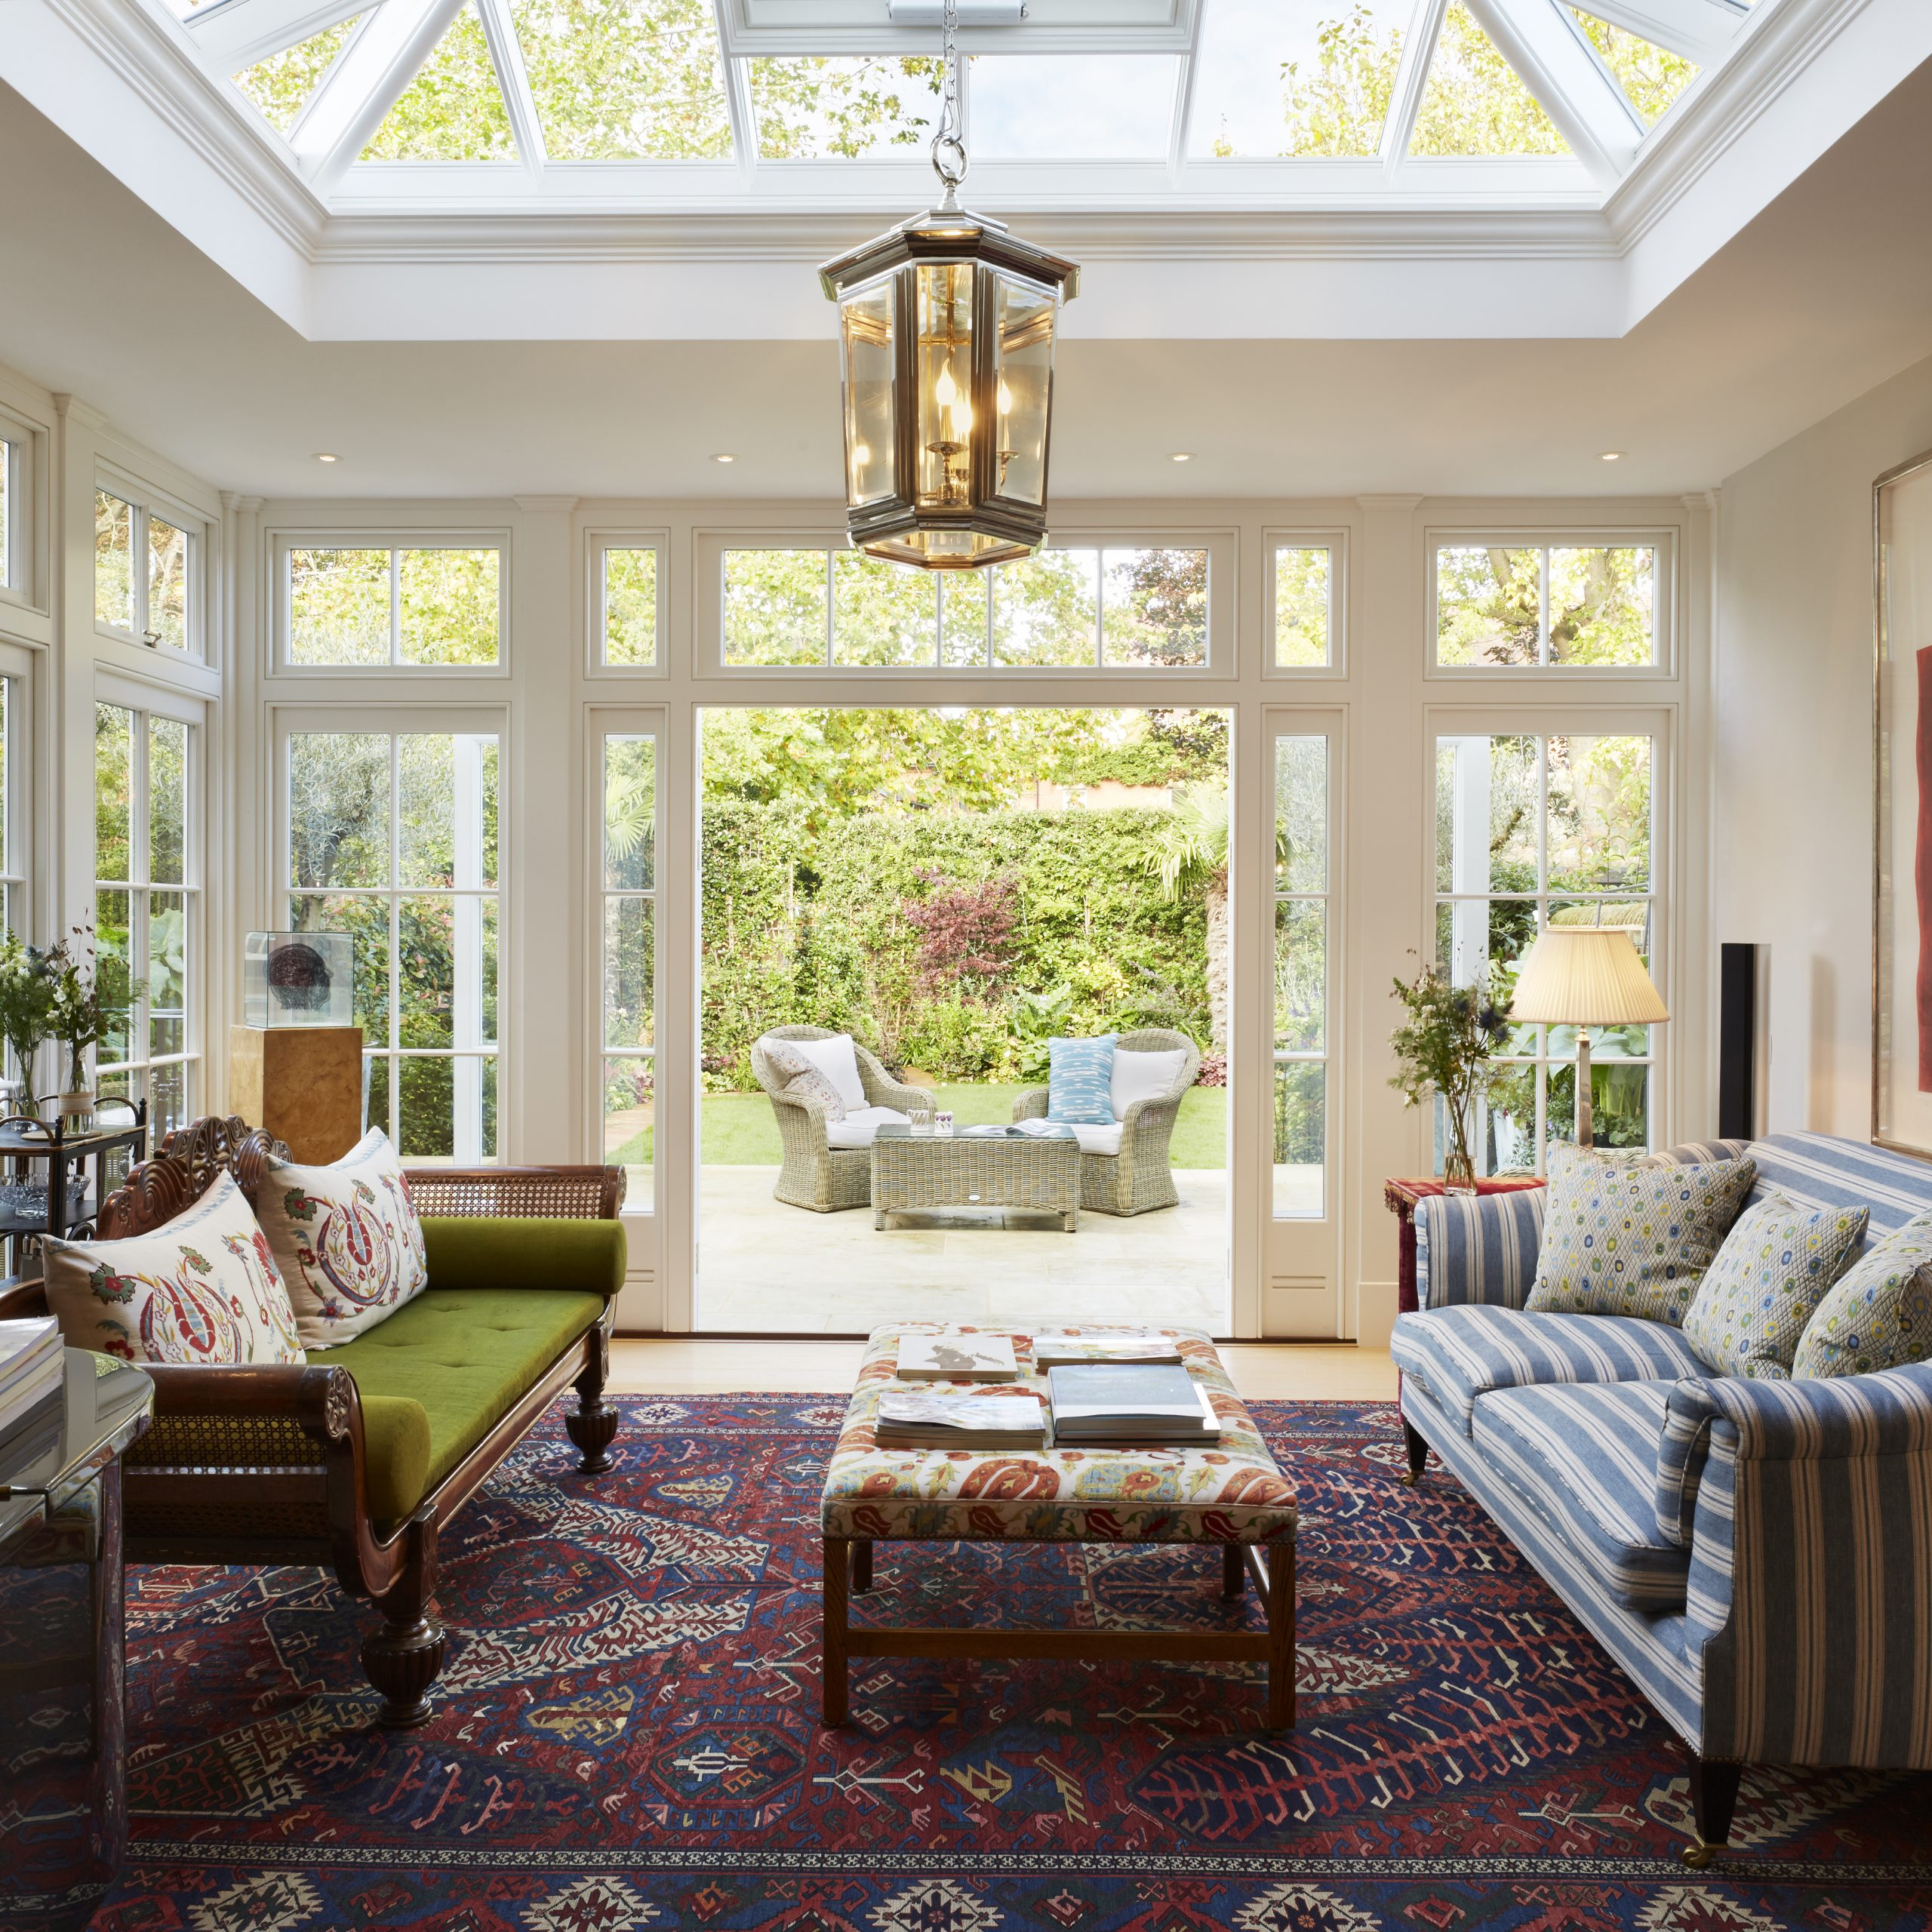 Orangery or conservatory furniture fading? – How to fight the fade